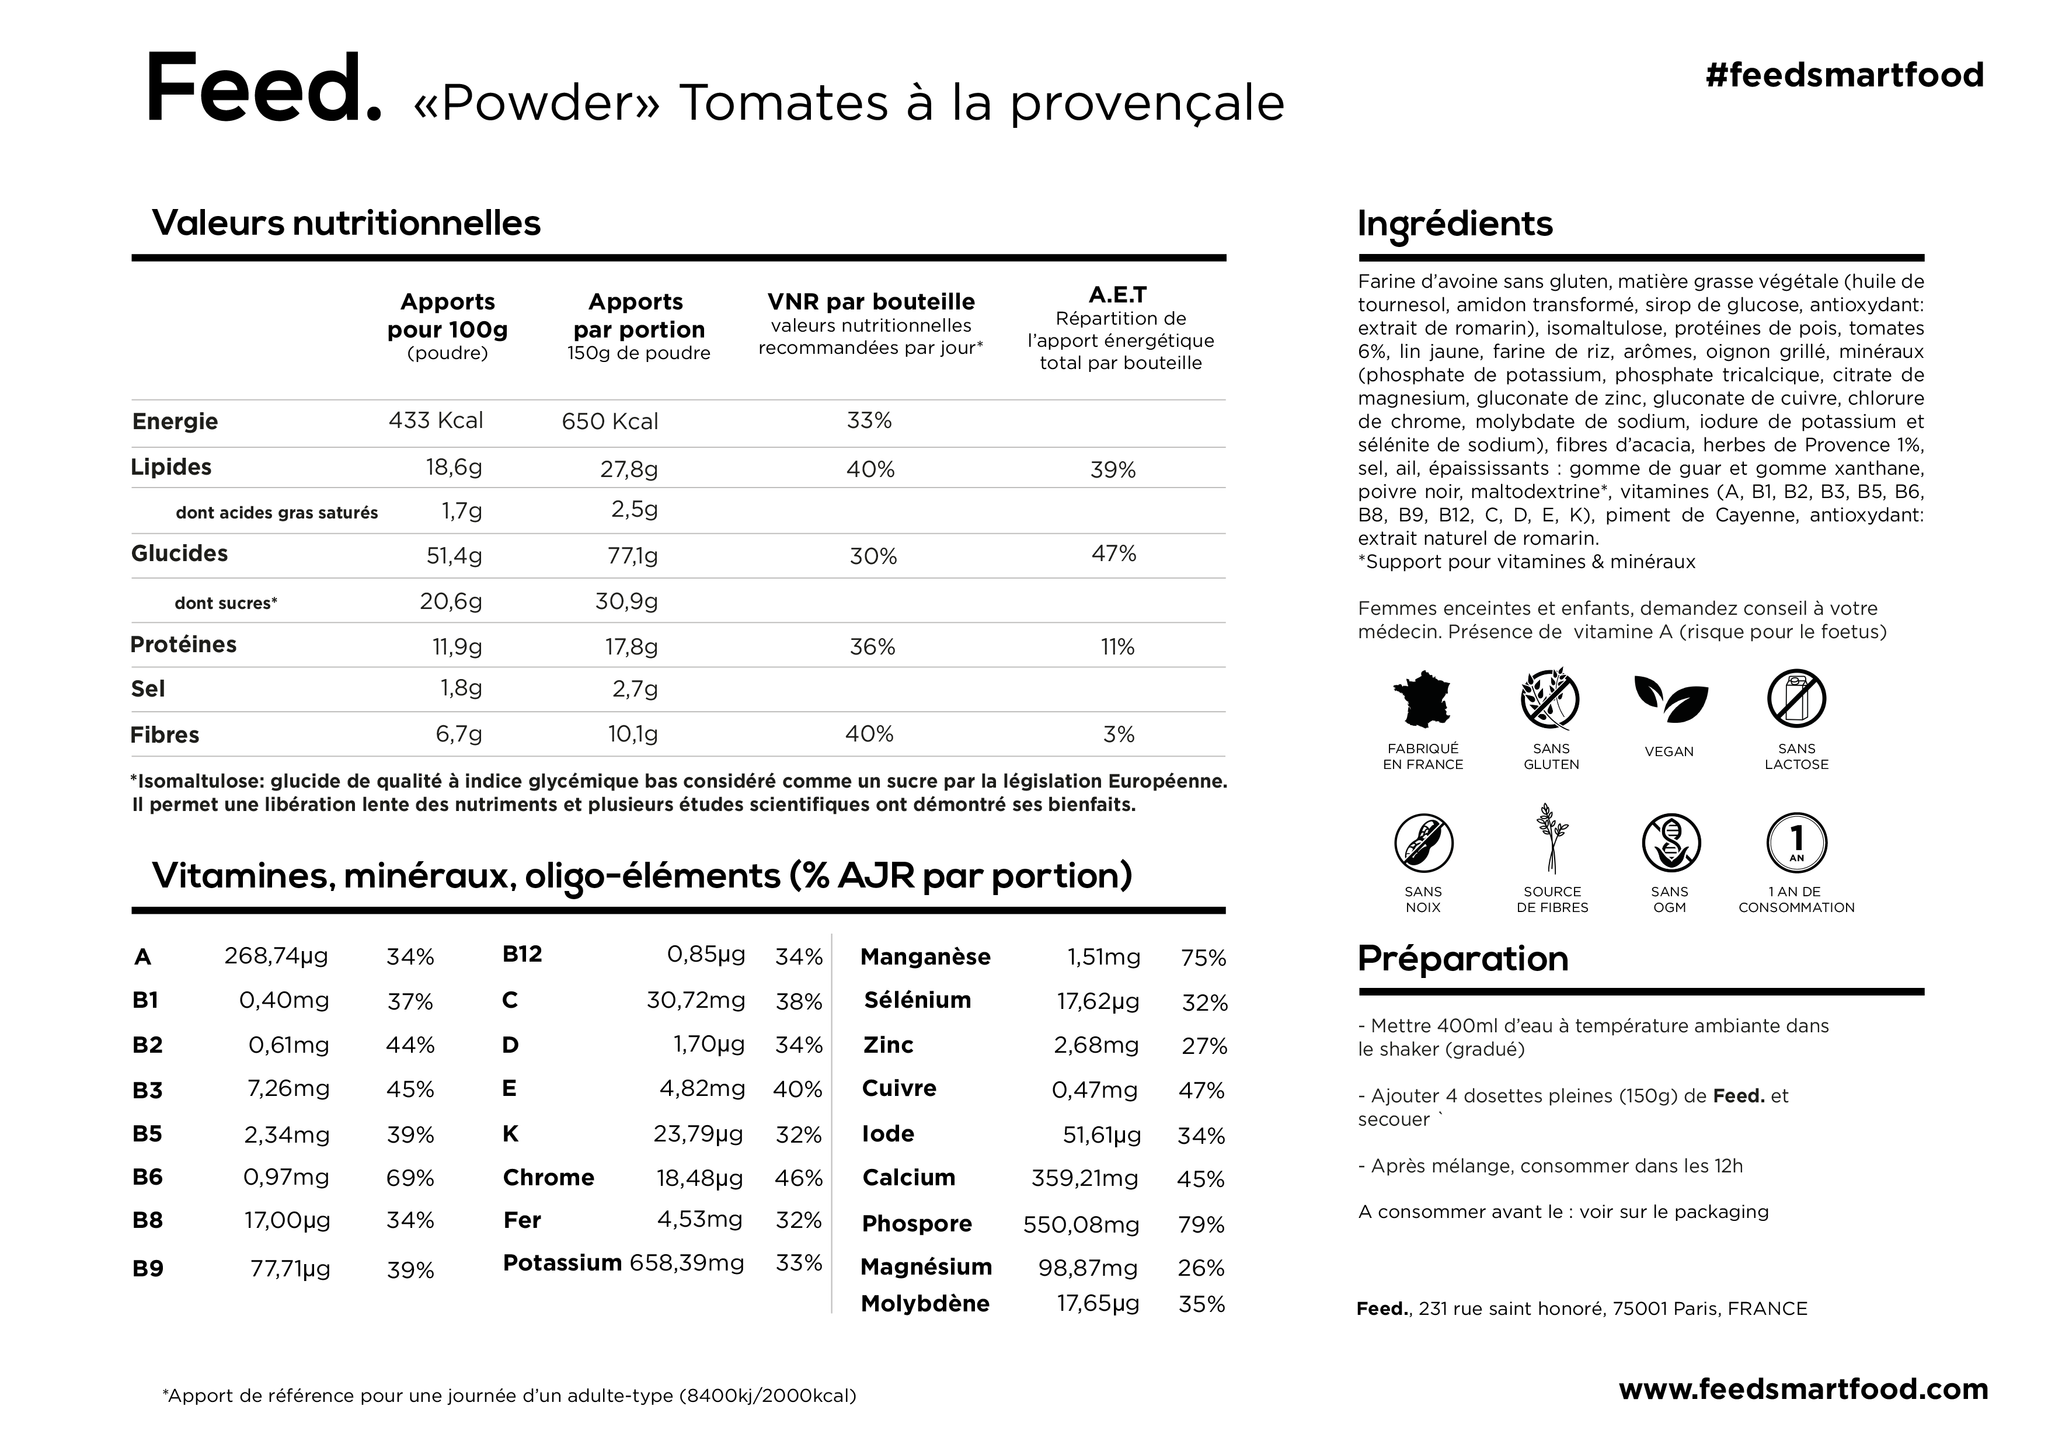 products/feed_tableau_nutritionnel_powder_tomates_a_la_provencale_fr.png